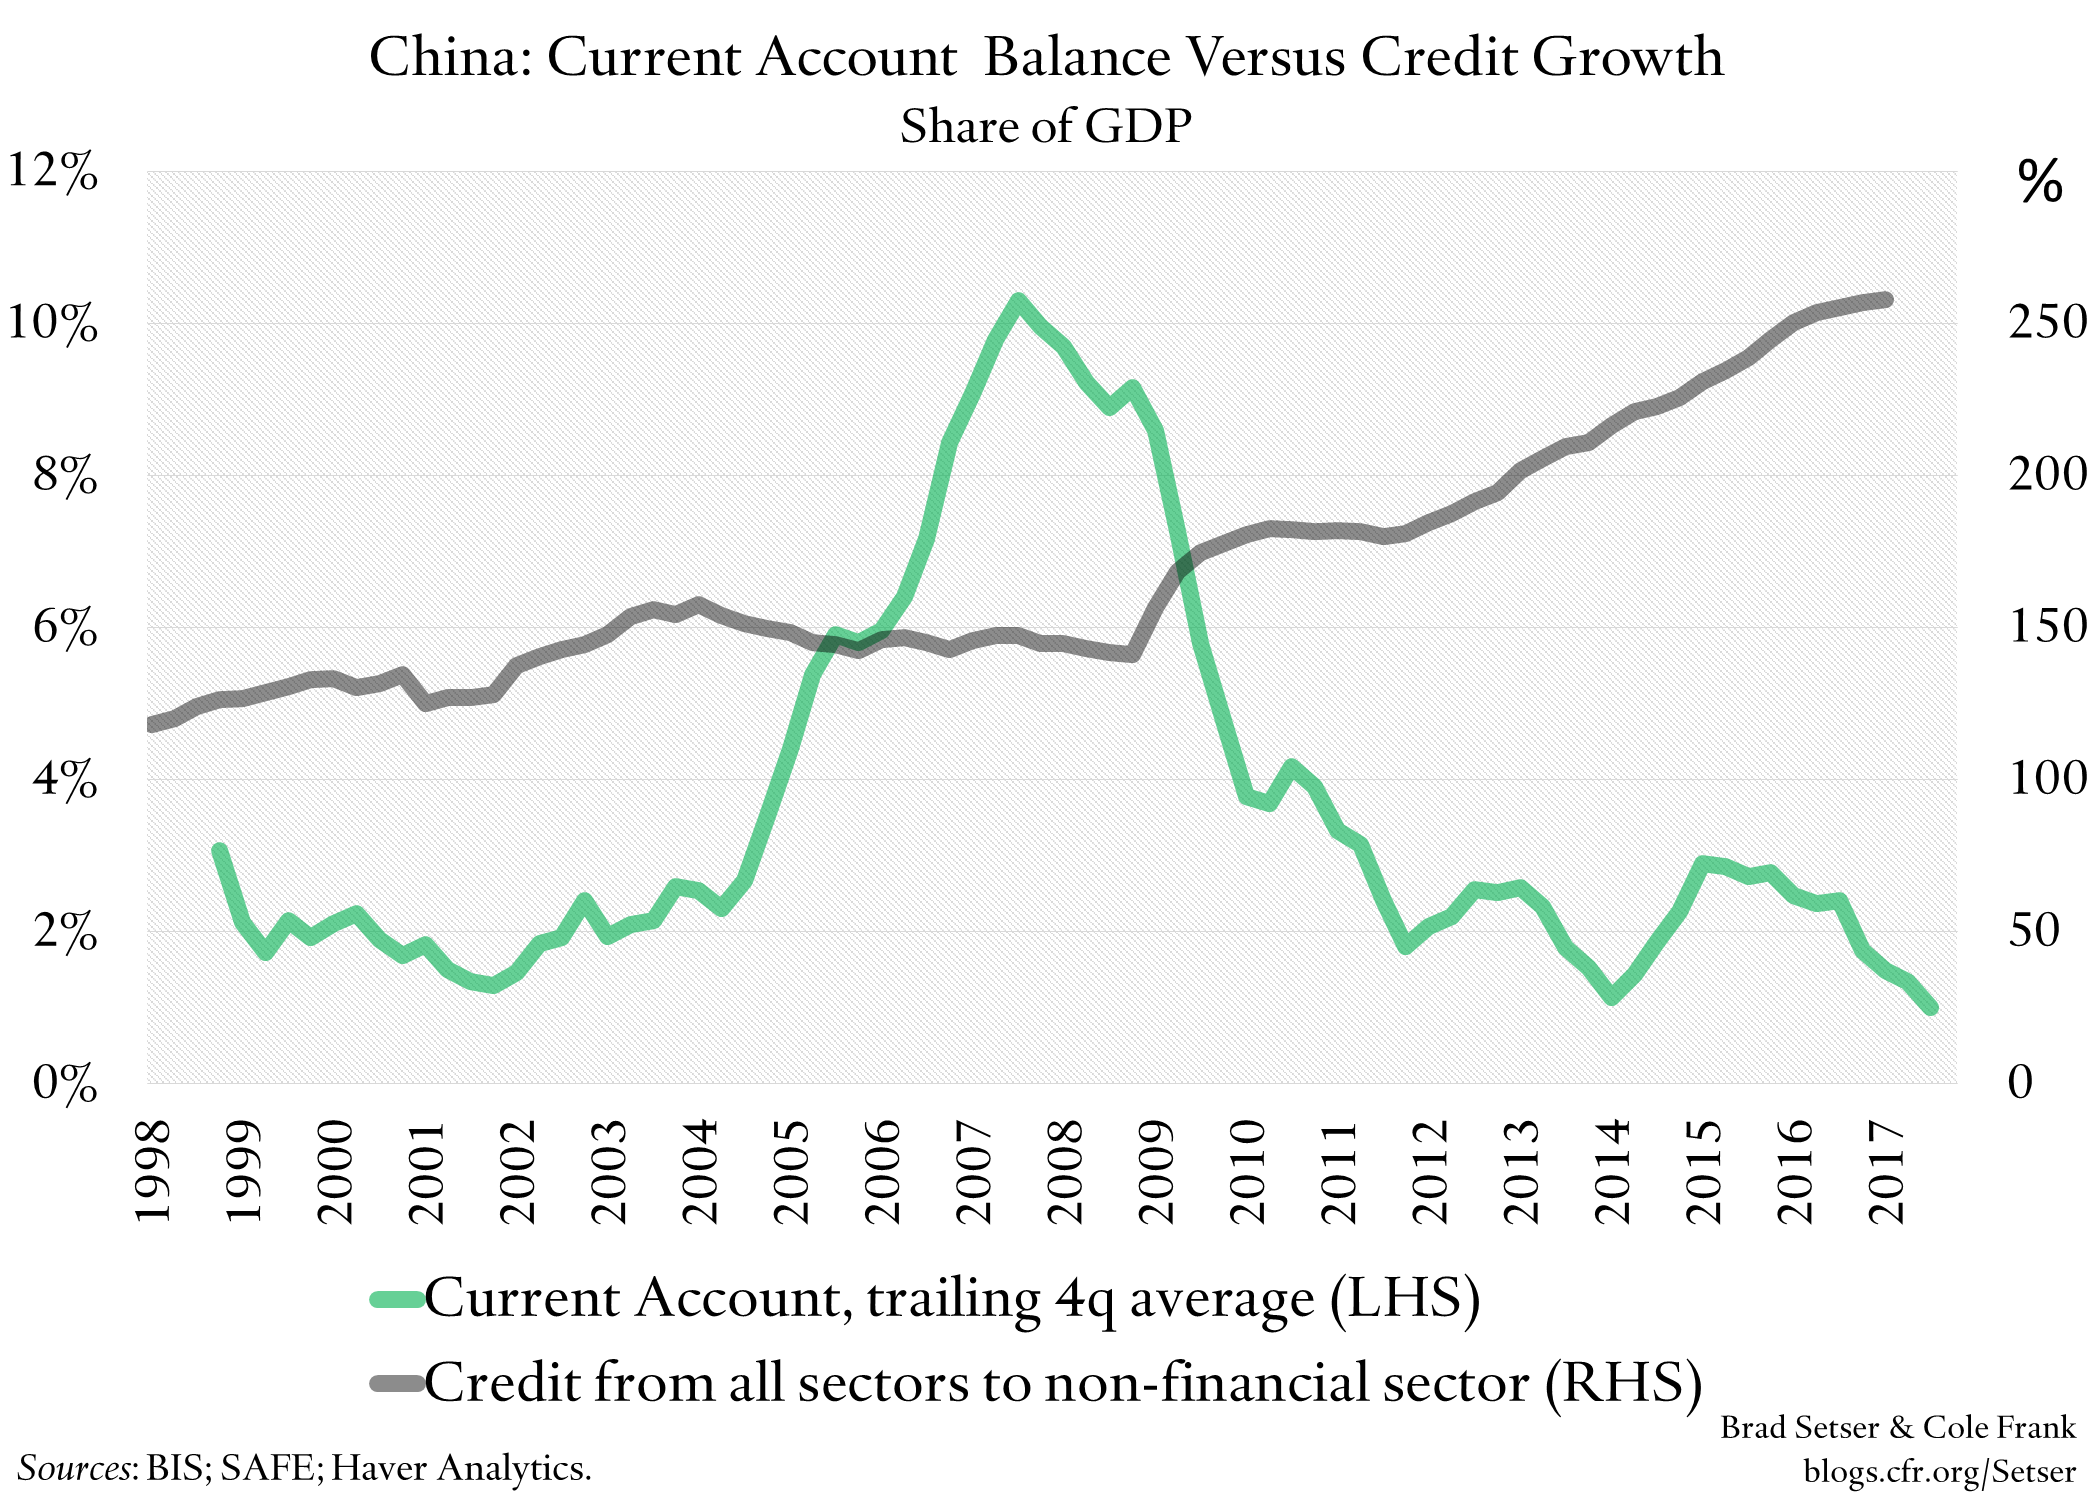 China, Credit, and the Current Account